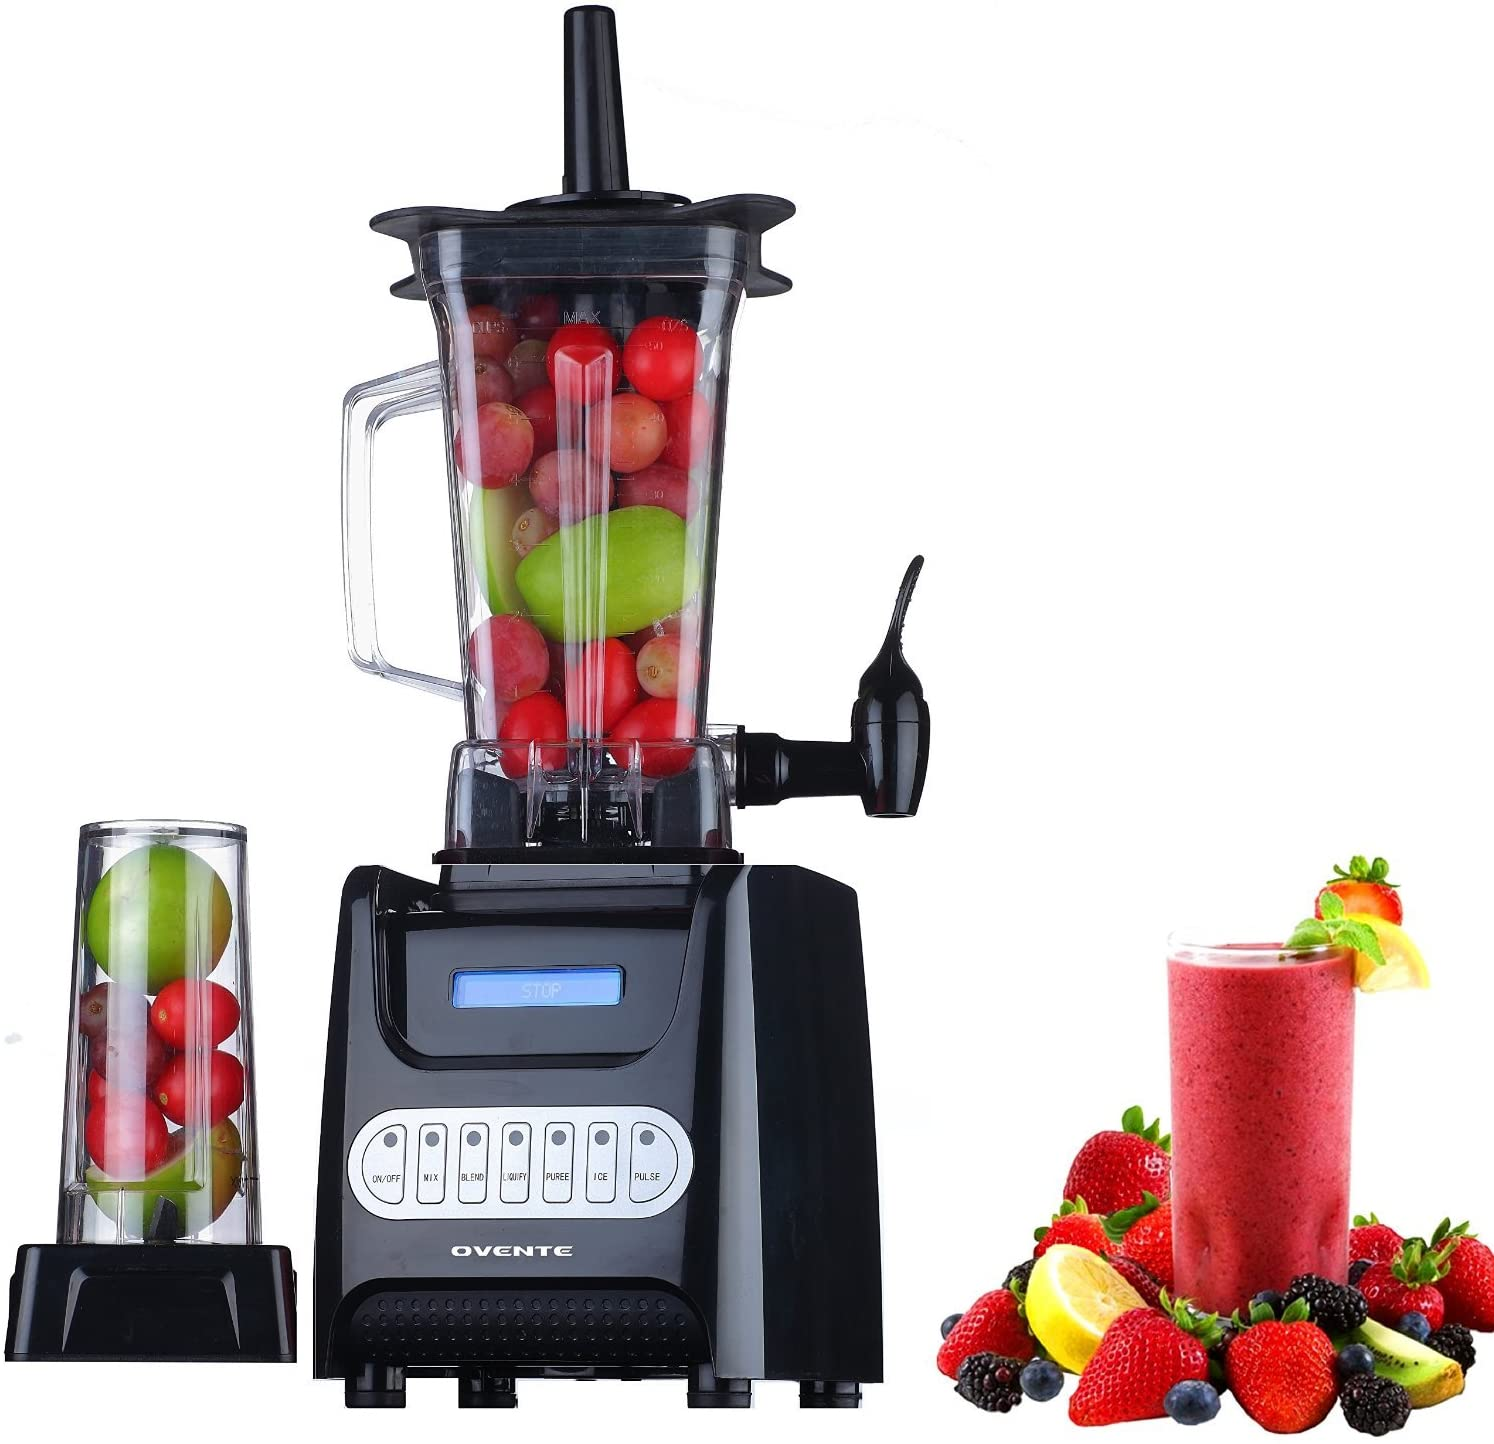 Ovente Professional Countertop Blender with Dispenser and Extra 13.5 Ounces BPA-Free Blender Cup for Smoothie, Protein Shakes, and Puree Baby Food, 1000 Watts Base, Multi Speed, Black (BLH1000B)